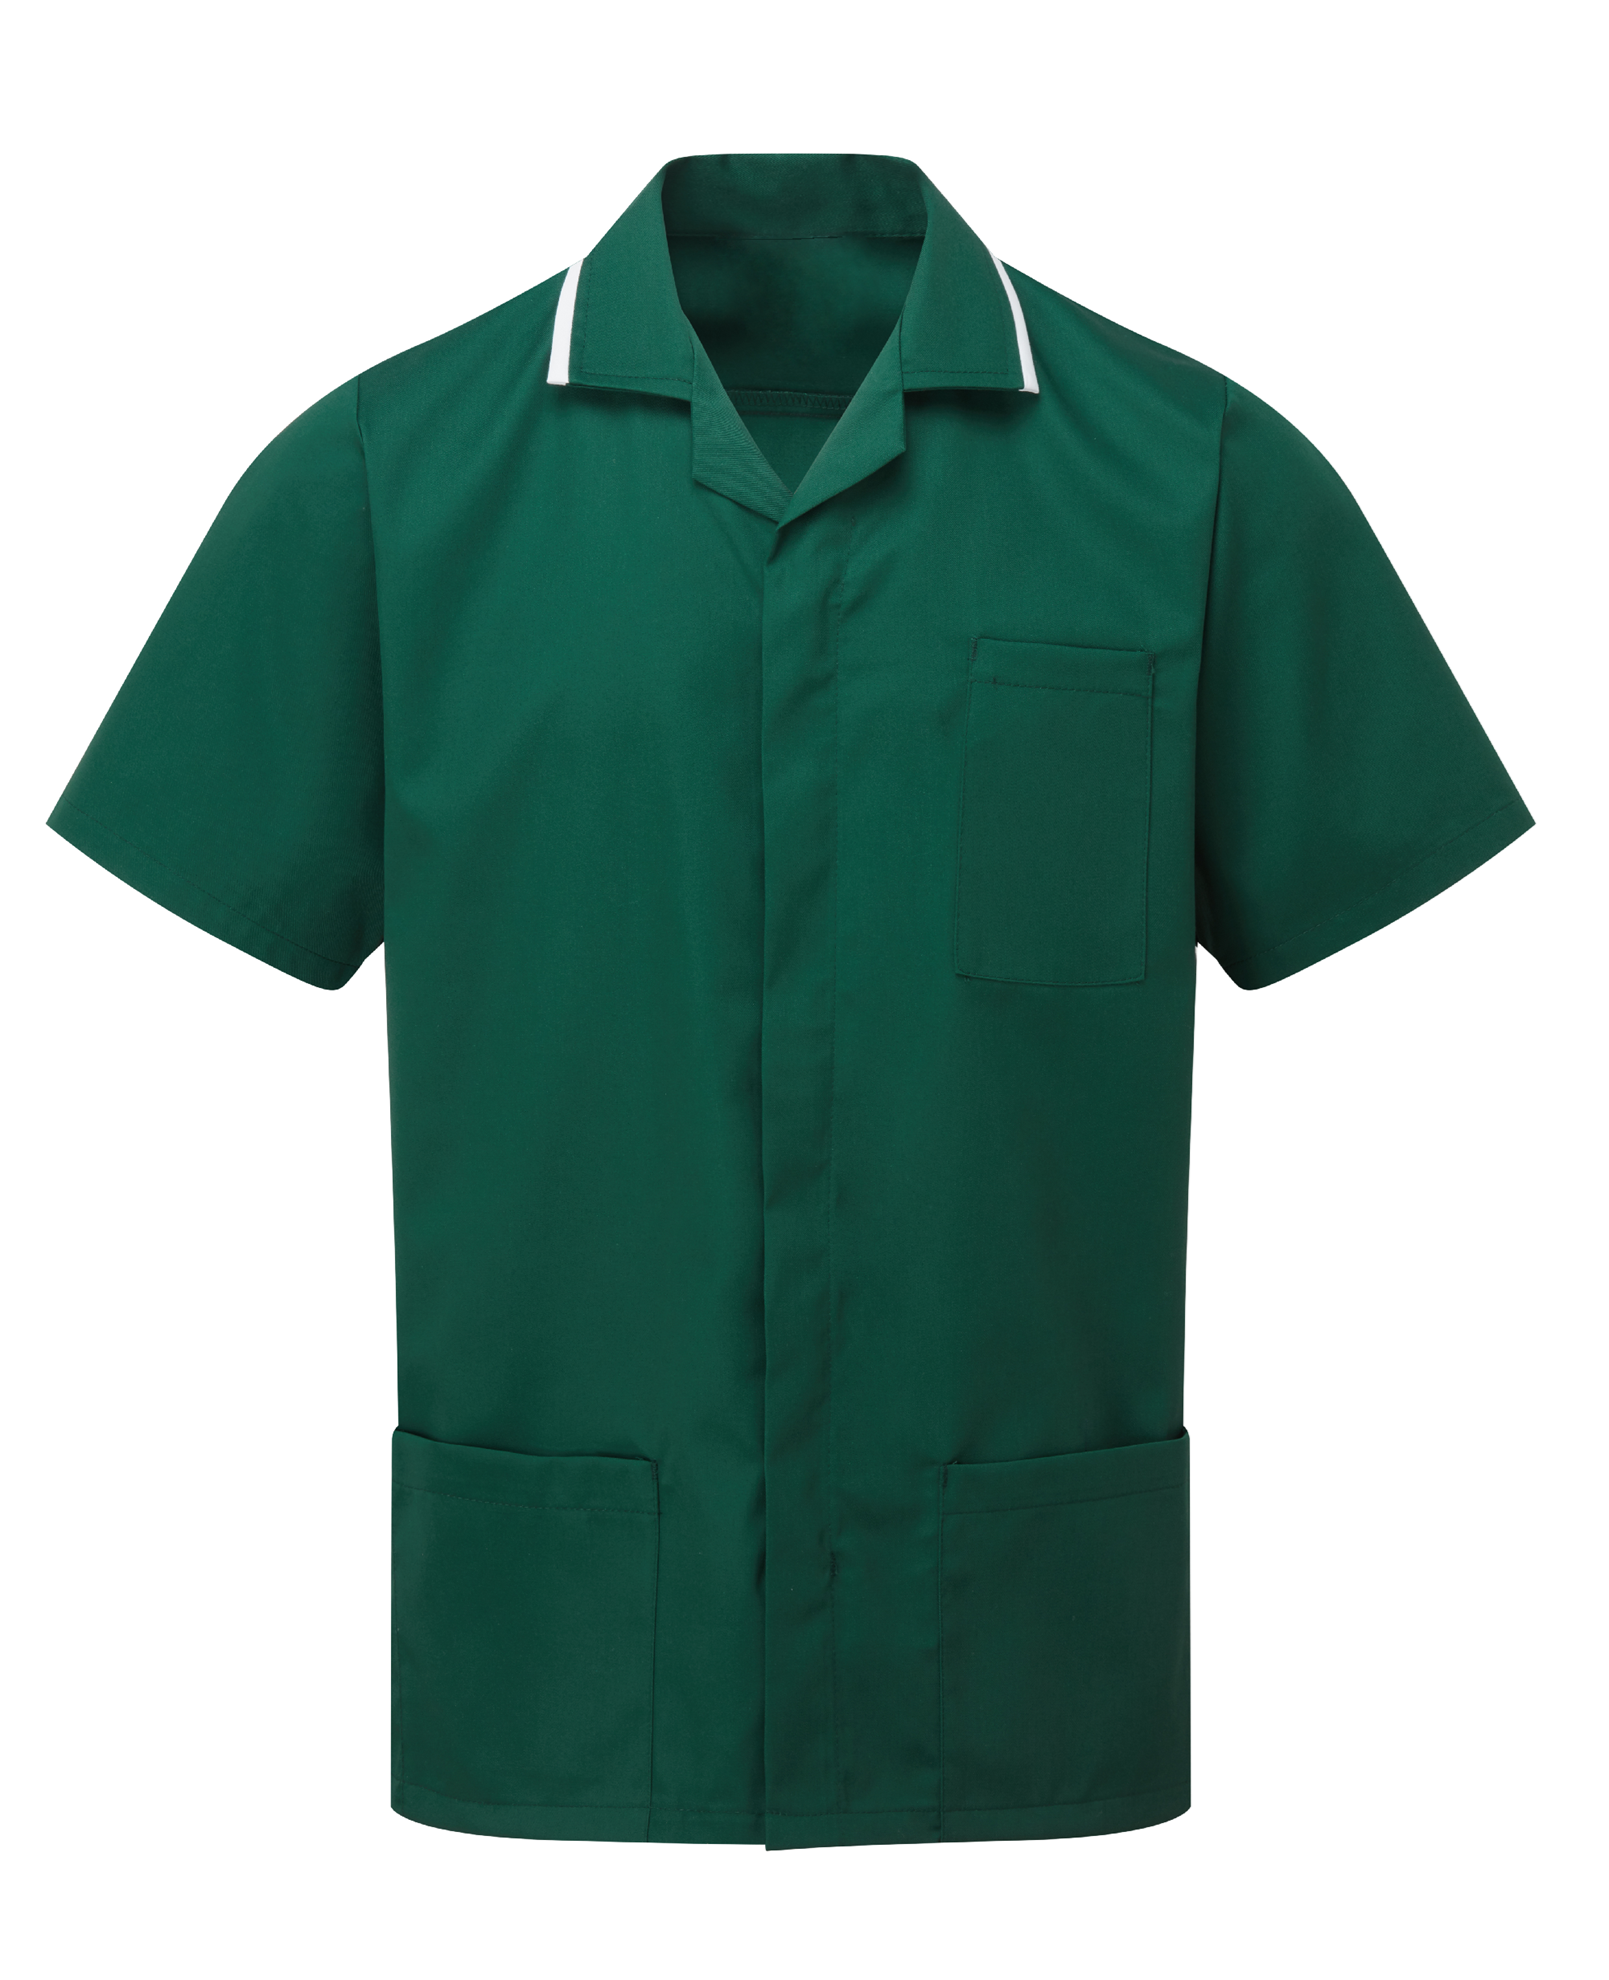 Picture of Advantage Front Fastening Tunic - Bottle Green/White